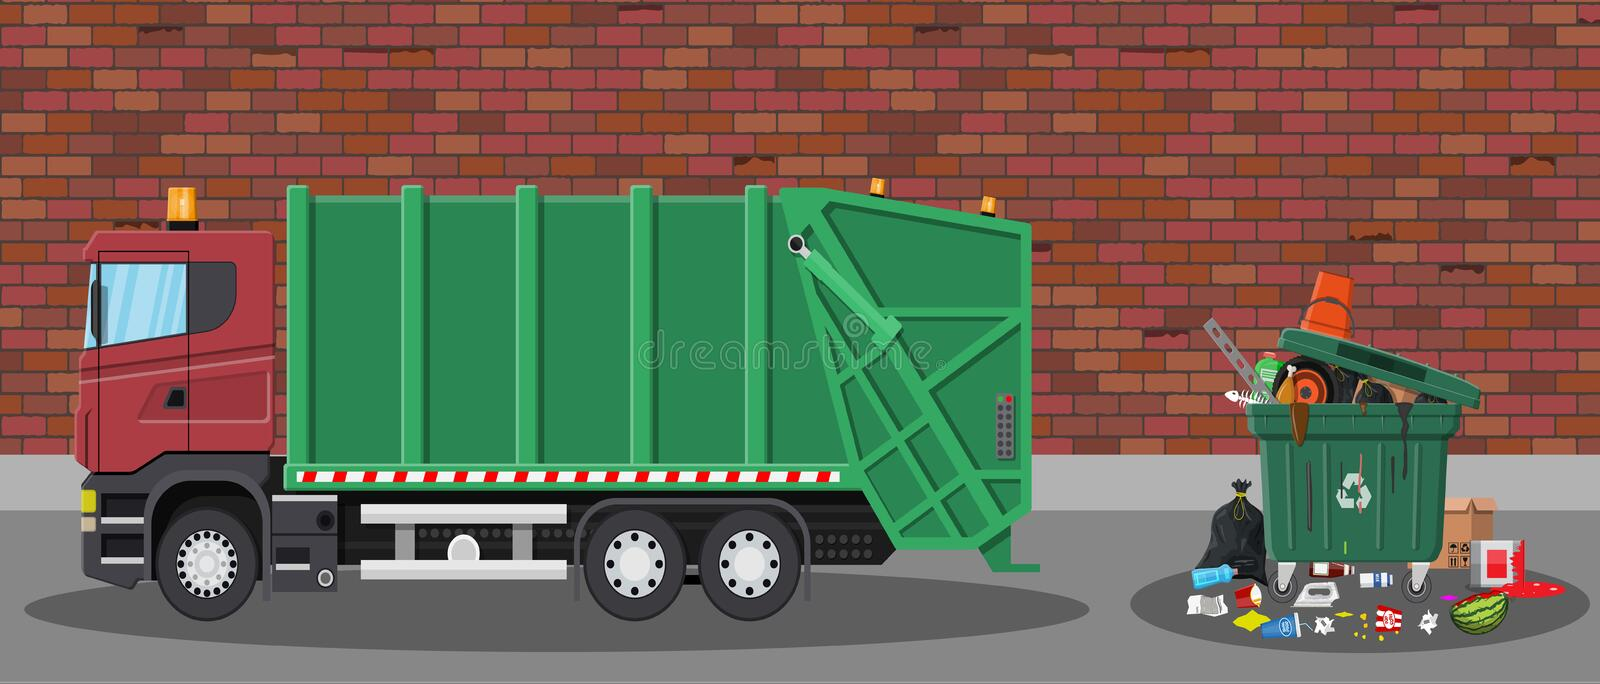 Garbage car and trash. Truck for assembling and transportation garbage. Car waste disposal. Can container, bag and bucket for garbage. Recycling and utilization royalty free illustration